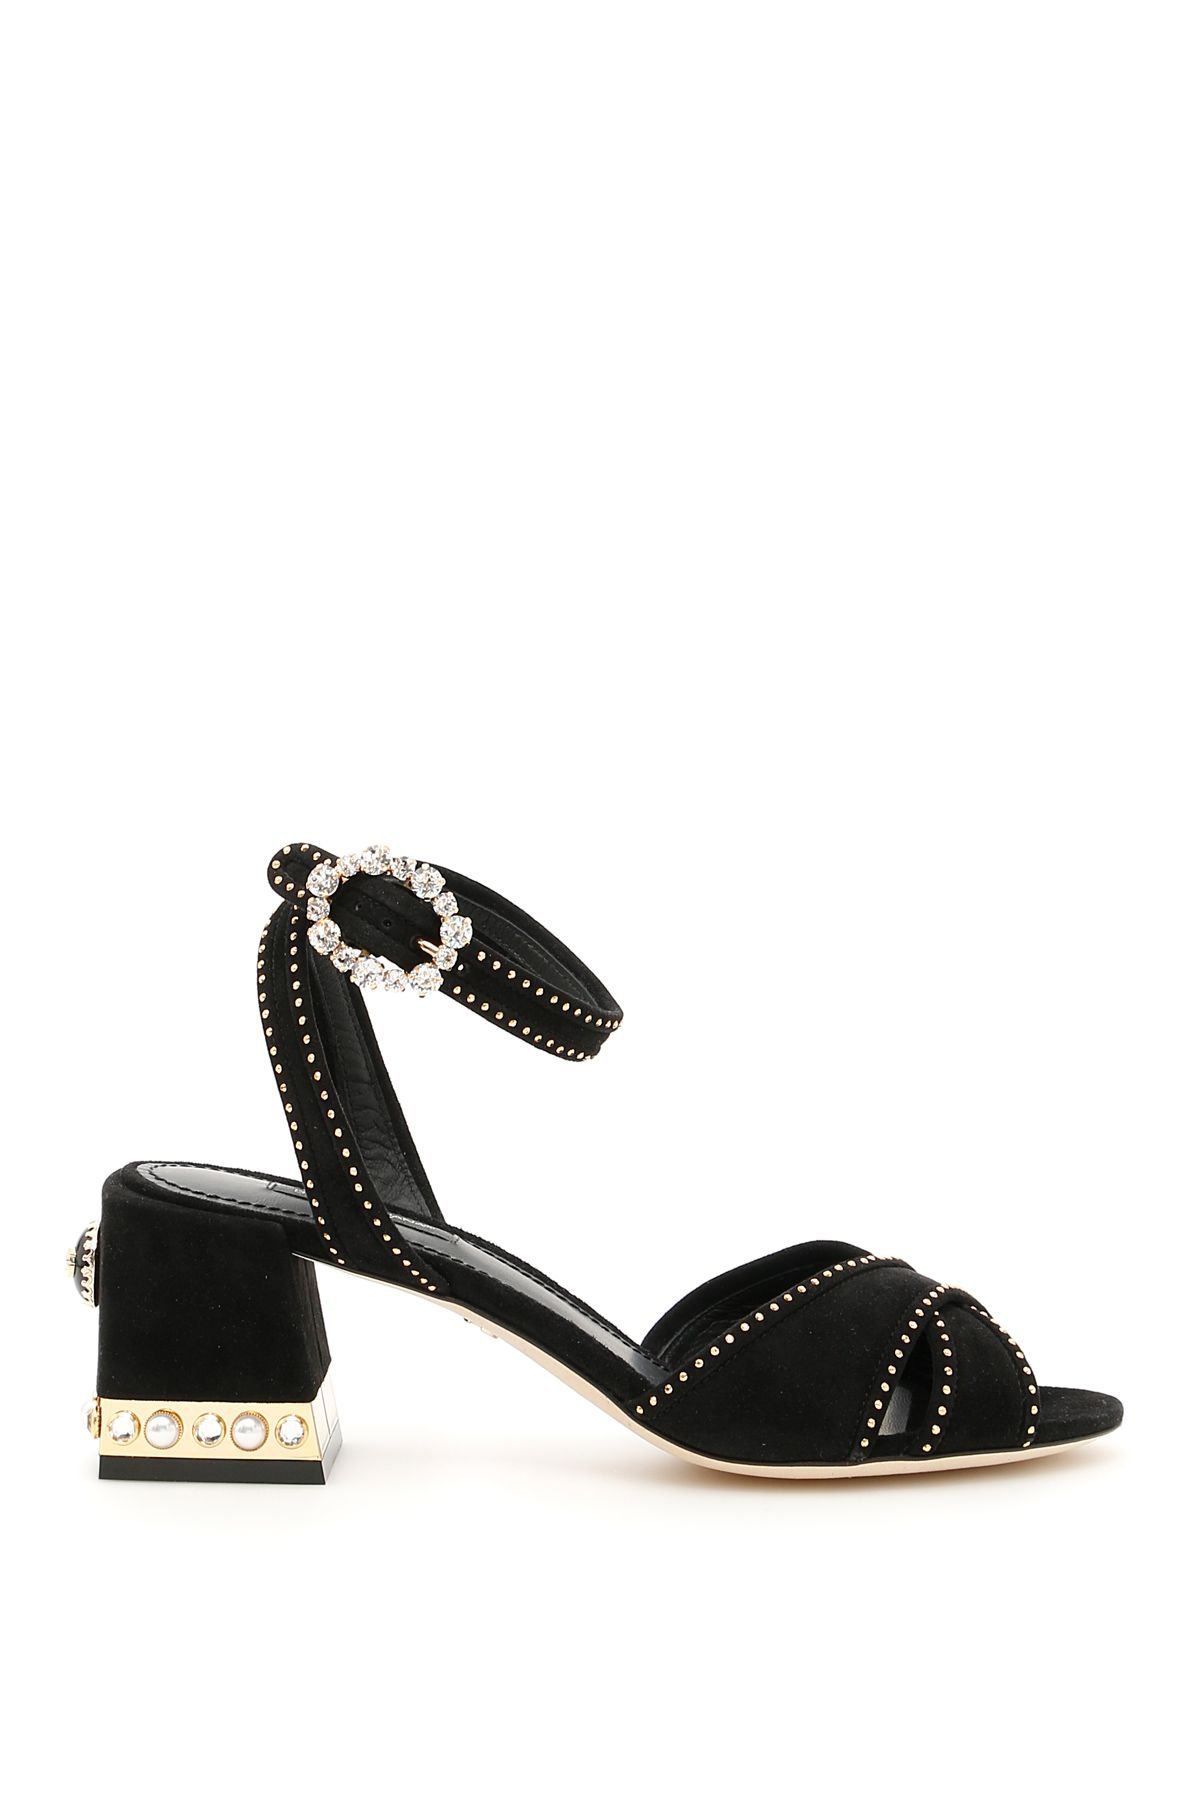 Dolce & Gabbana Suede Keira Sandals With Micro Studs